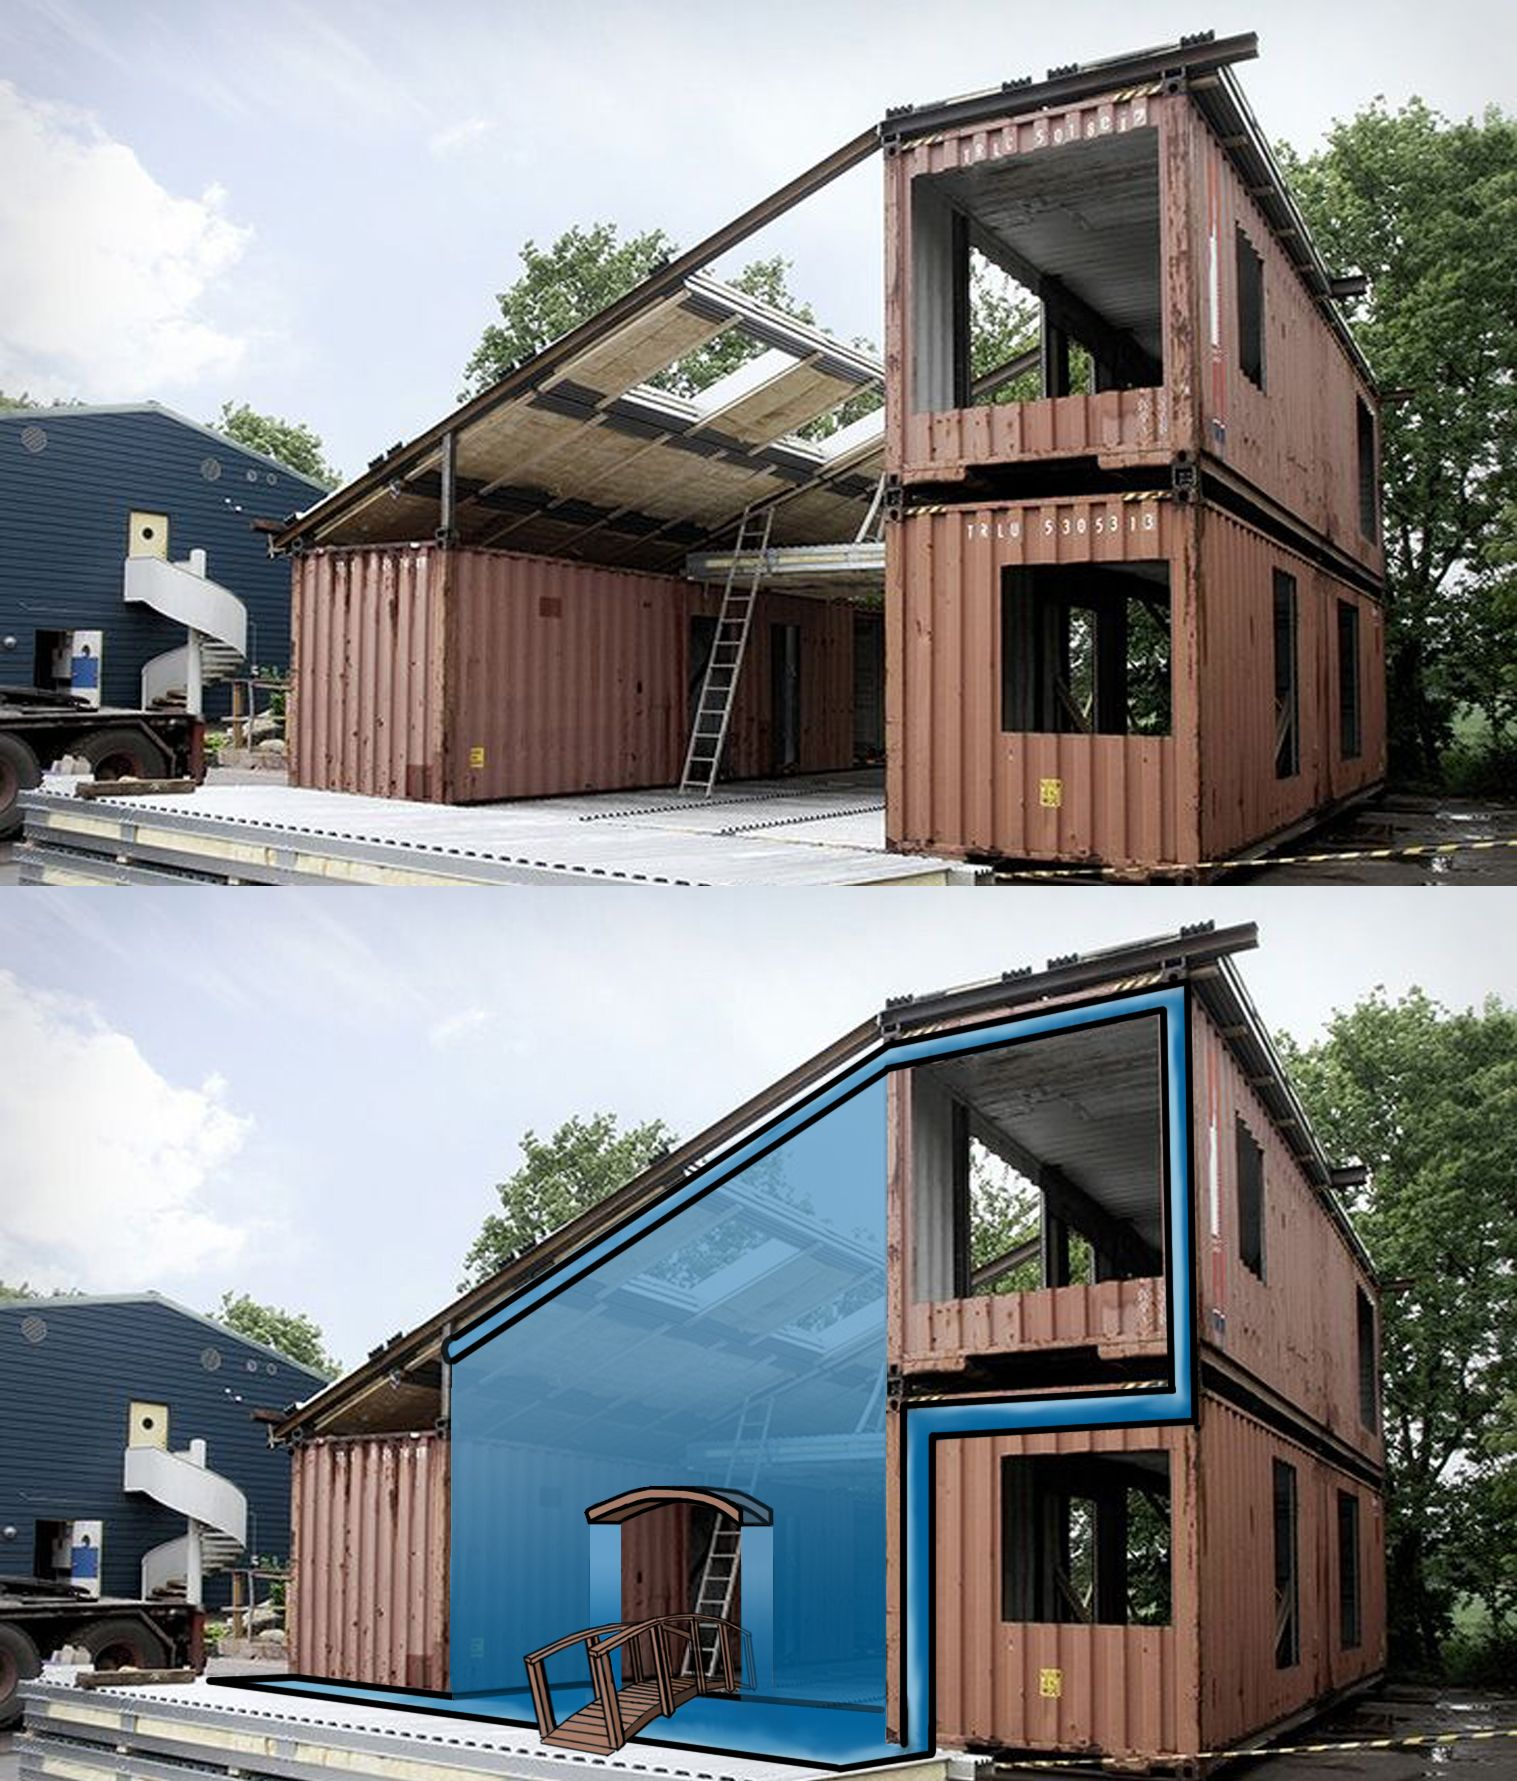 House Made From Shipping Container photoshop rendition of a house made of shipping containers using a